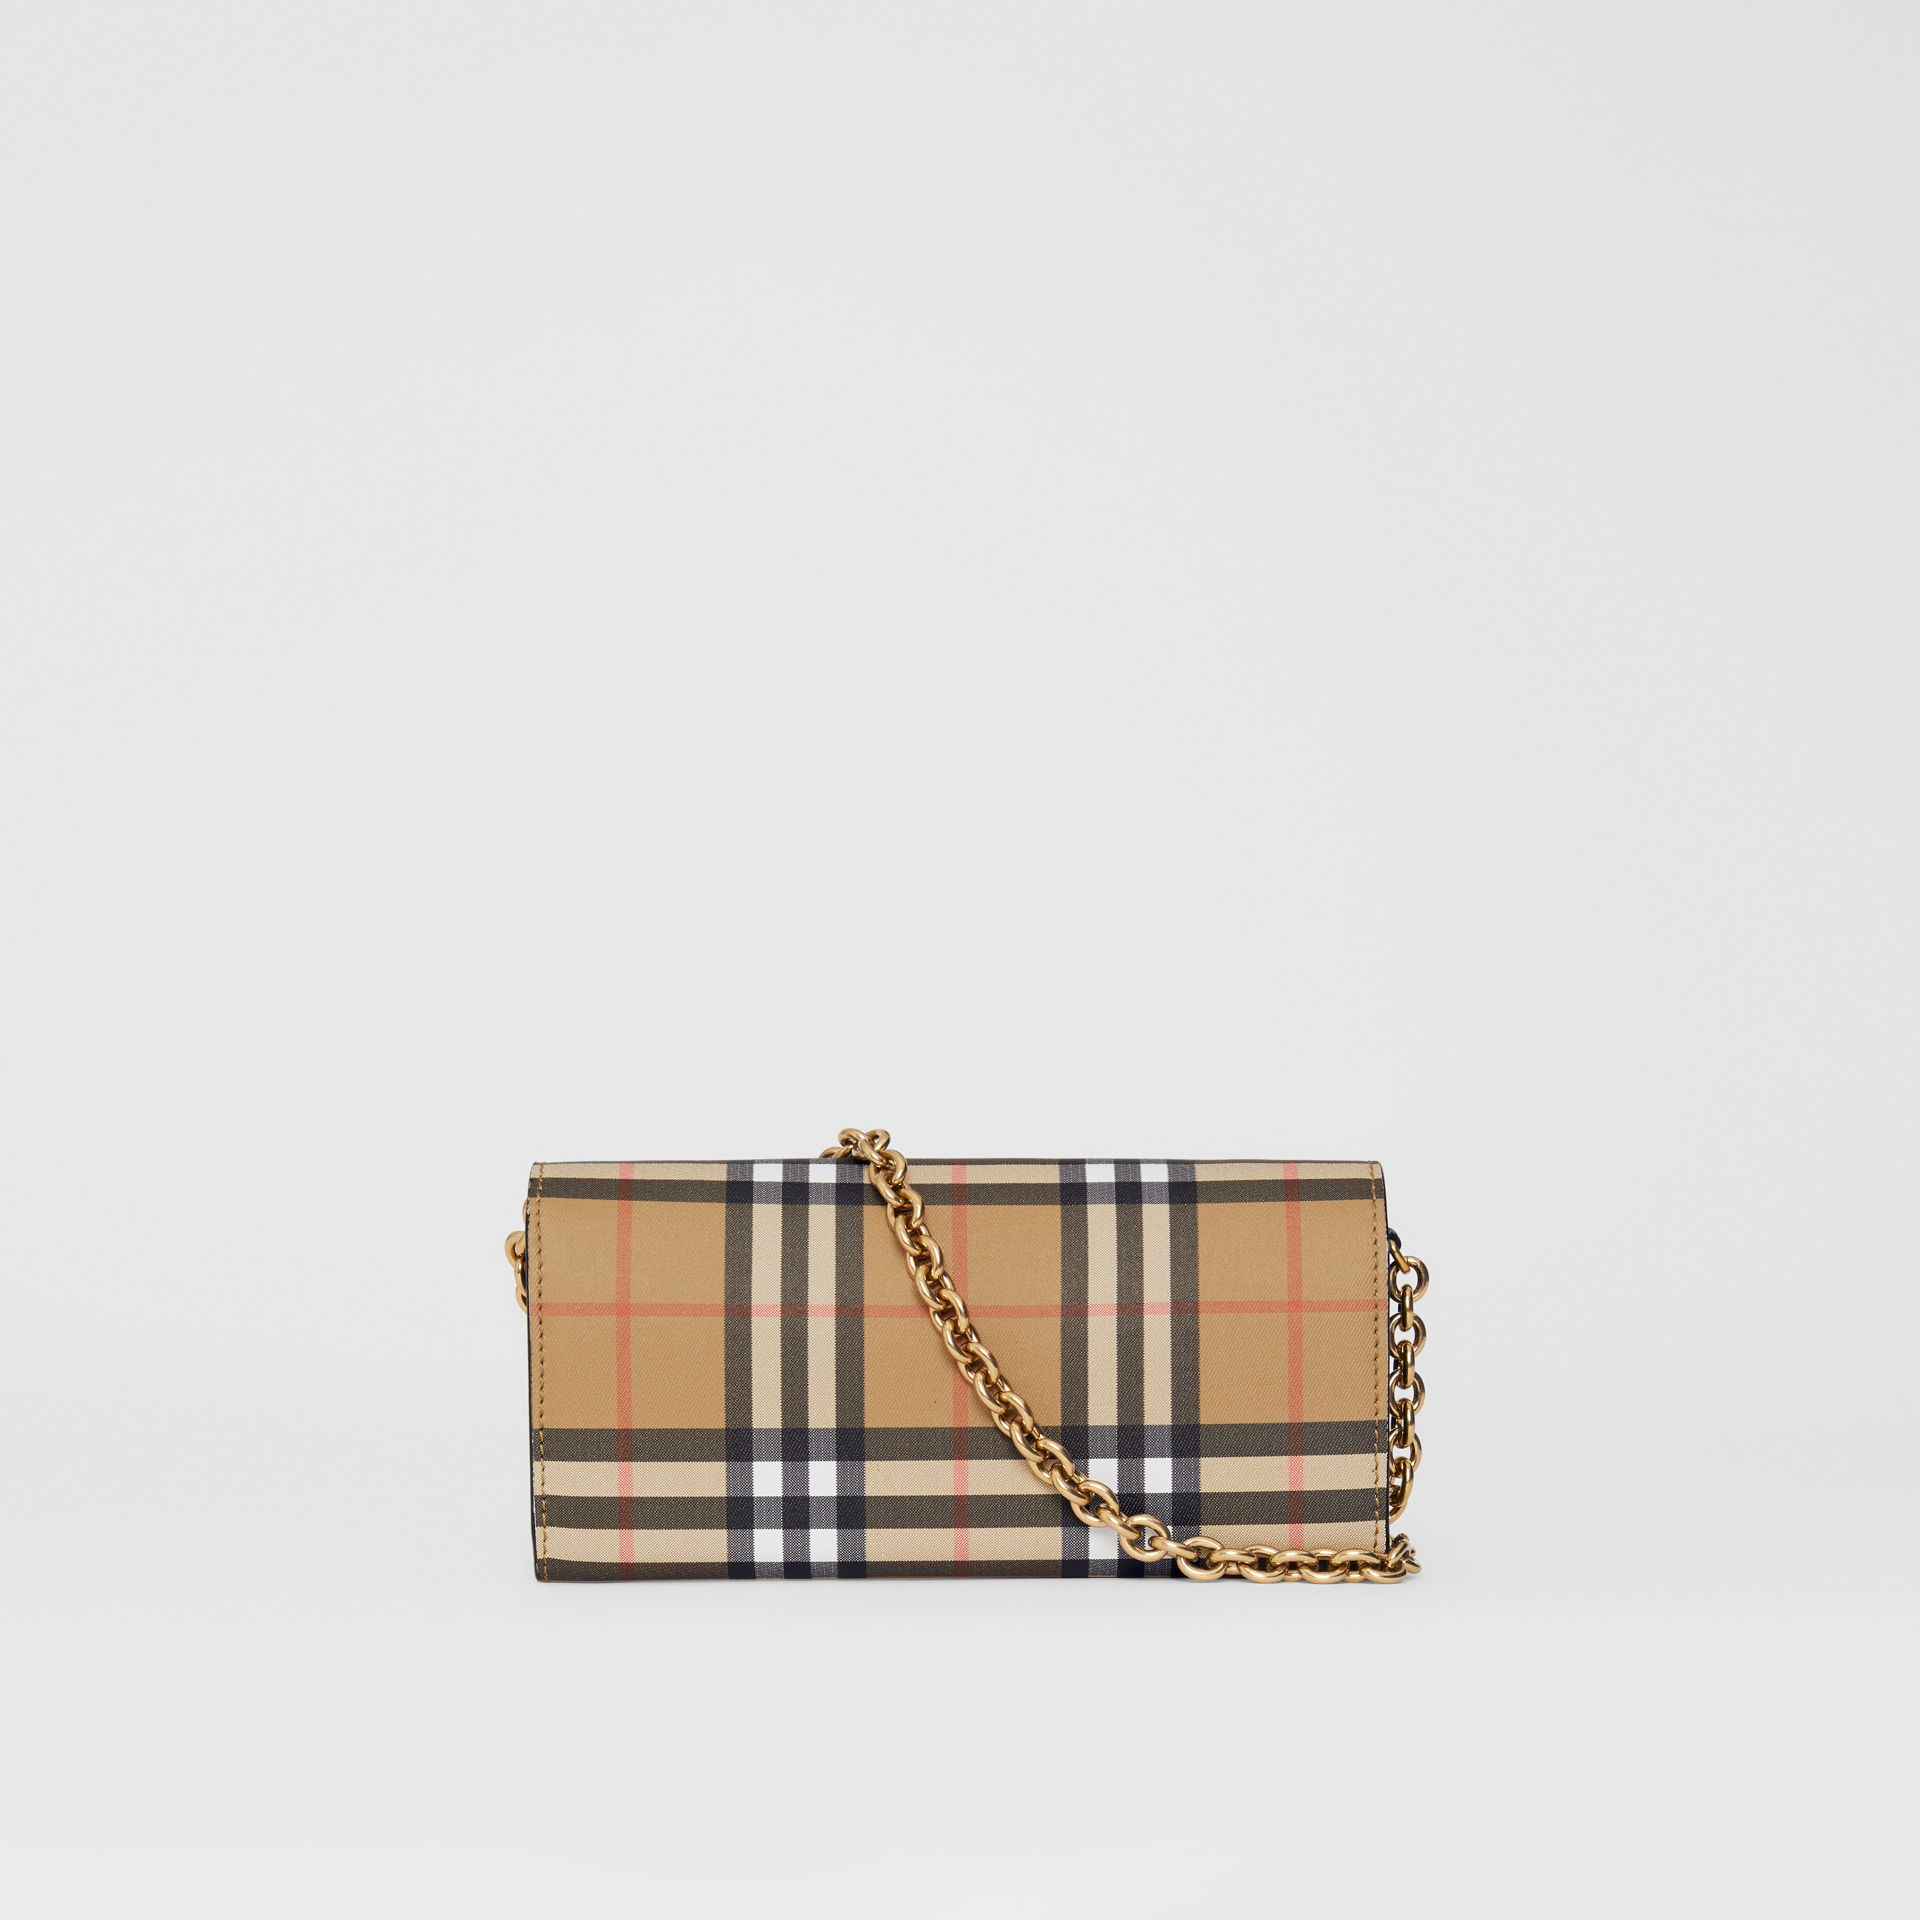 Vintage Check and Leather Wallet with Chain in Black - Women | Burberry Australia - gallery image 7